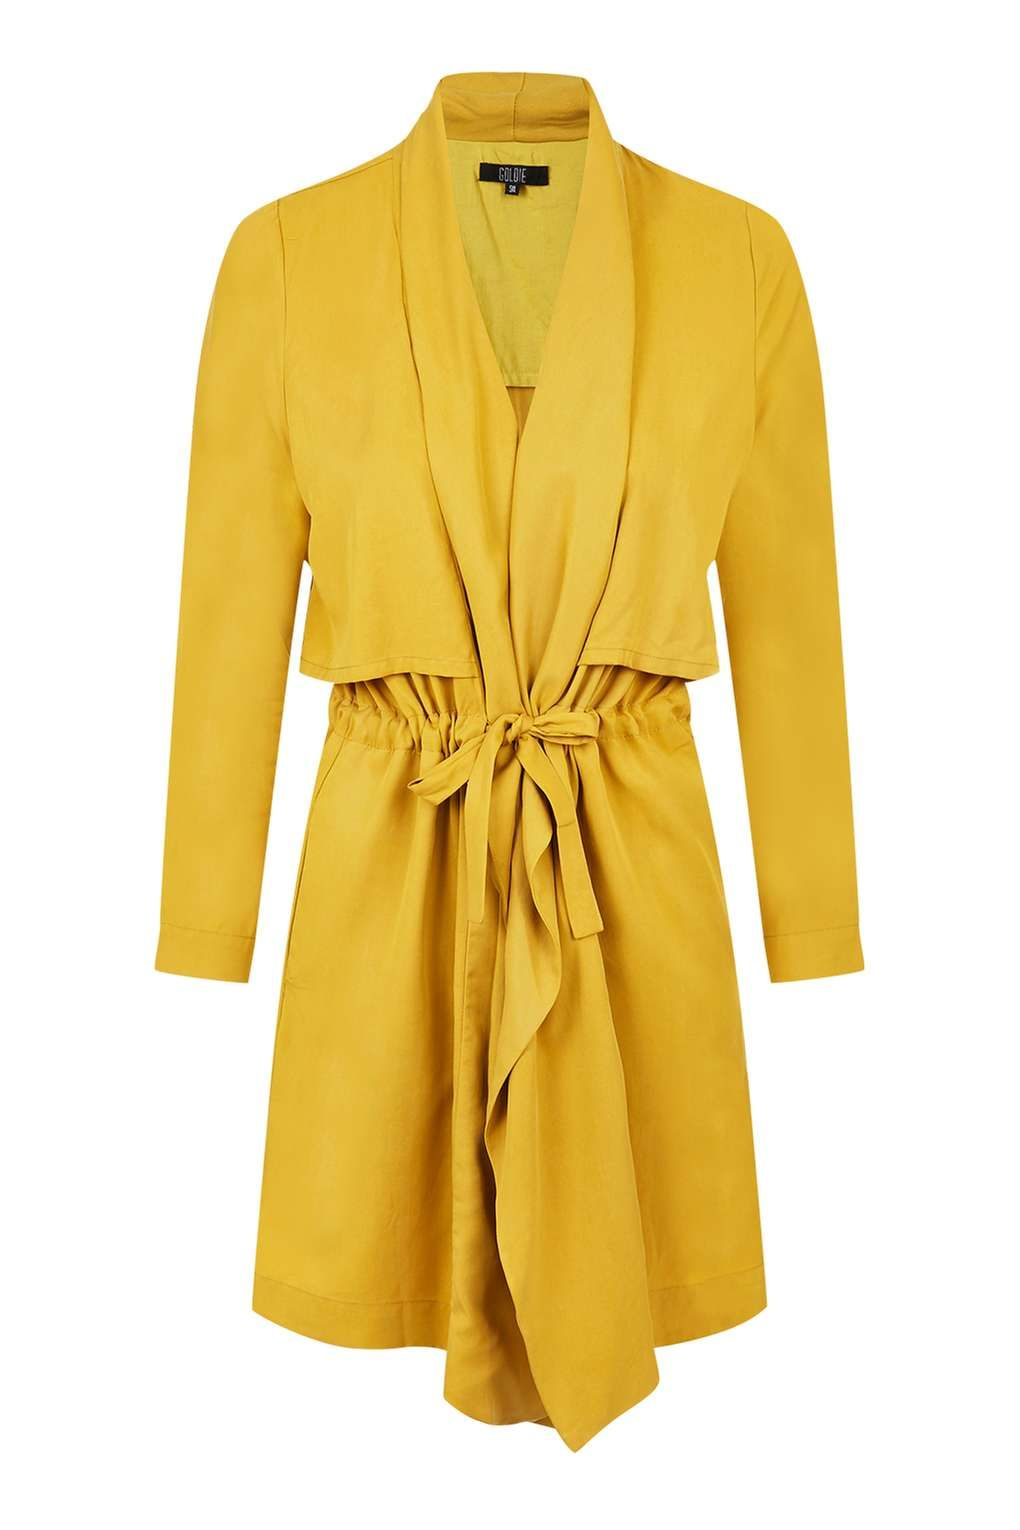 f2ad9211a Stalker - Mustard Yellow Waterfall Coat by Goldie | clothes ...